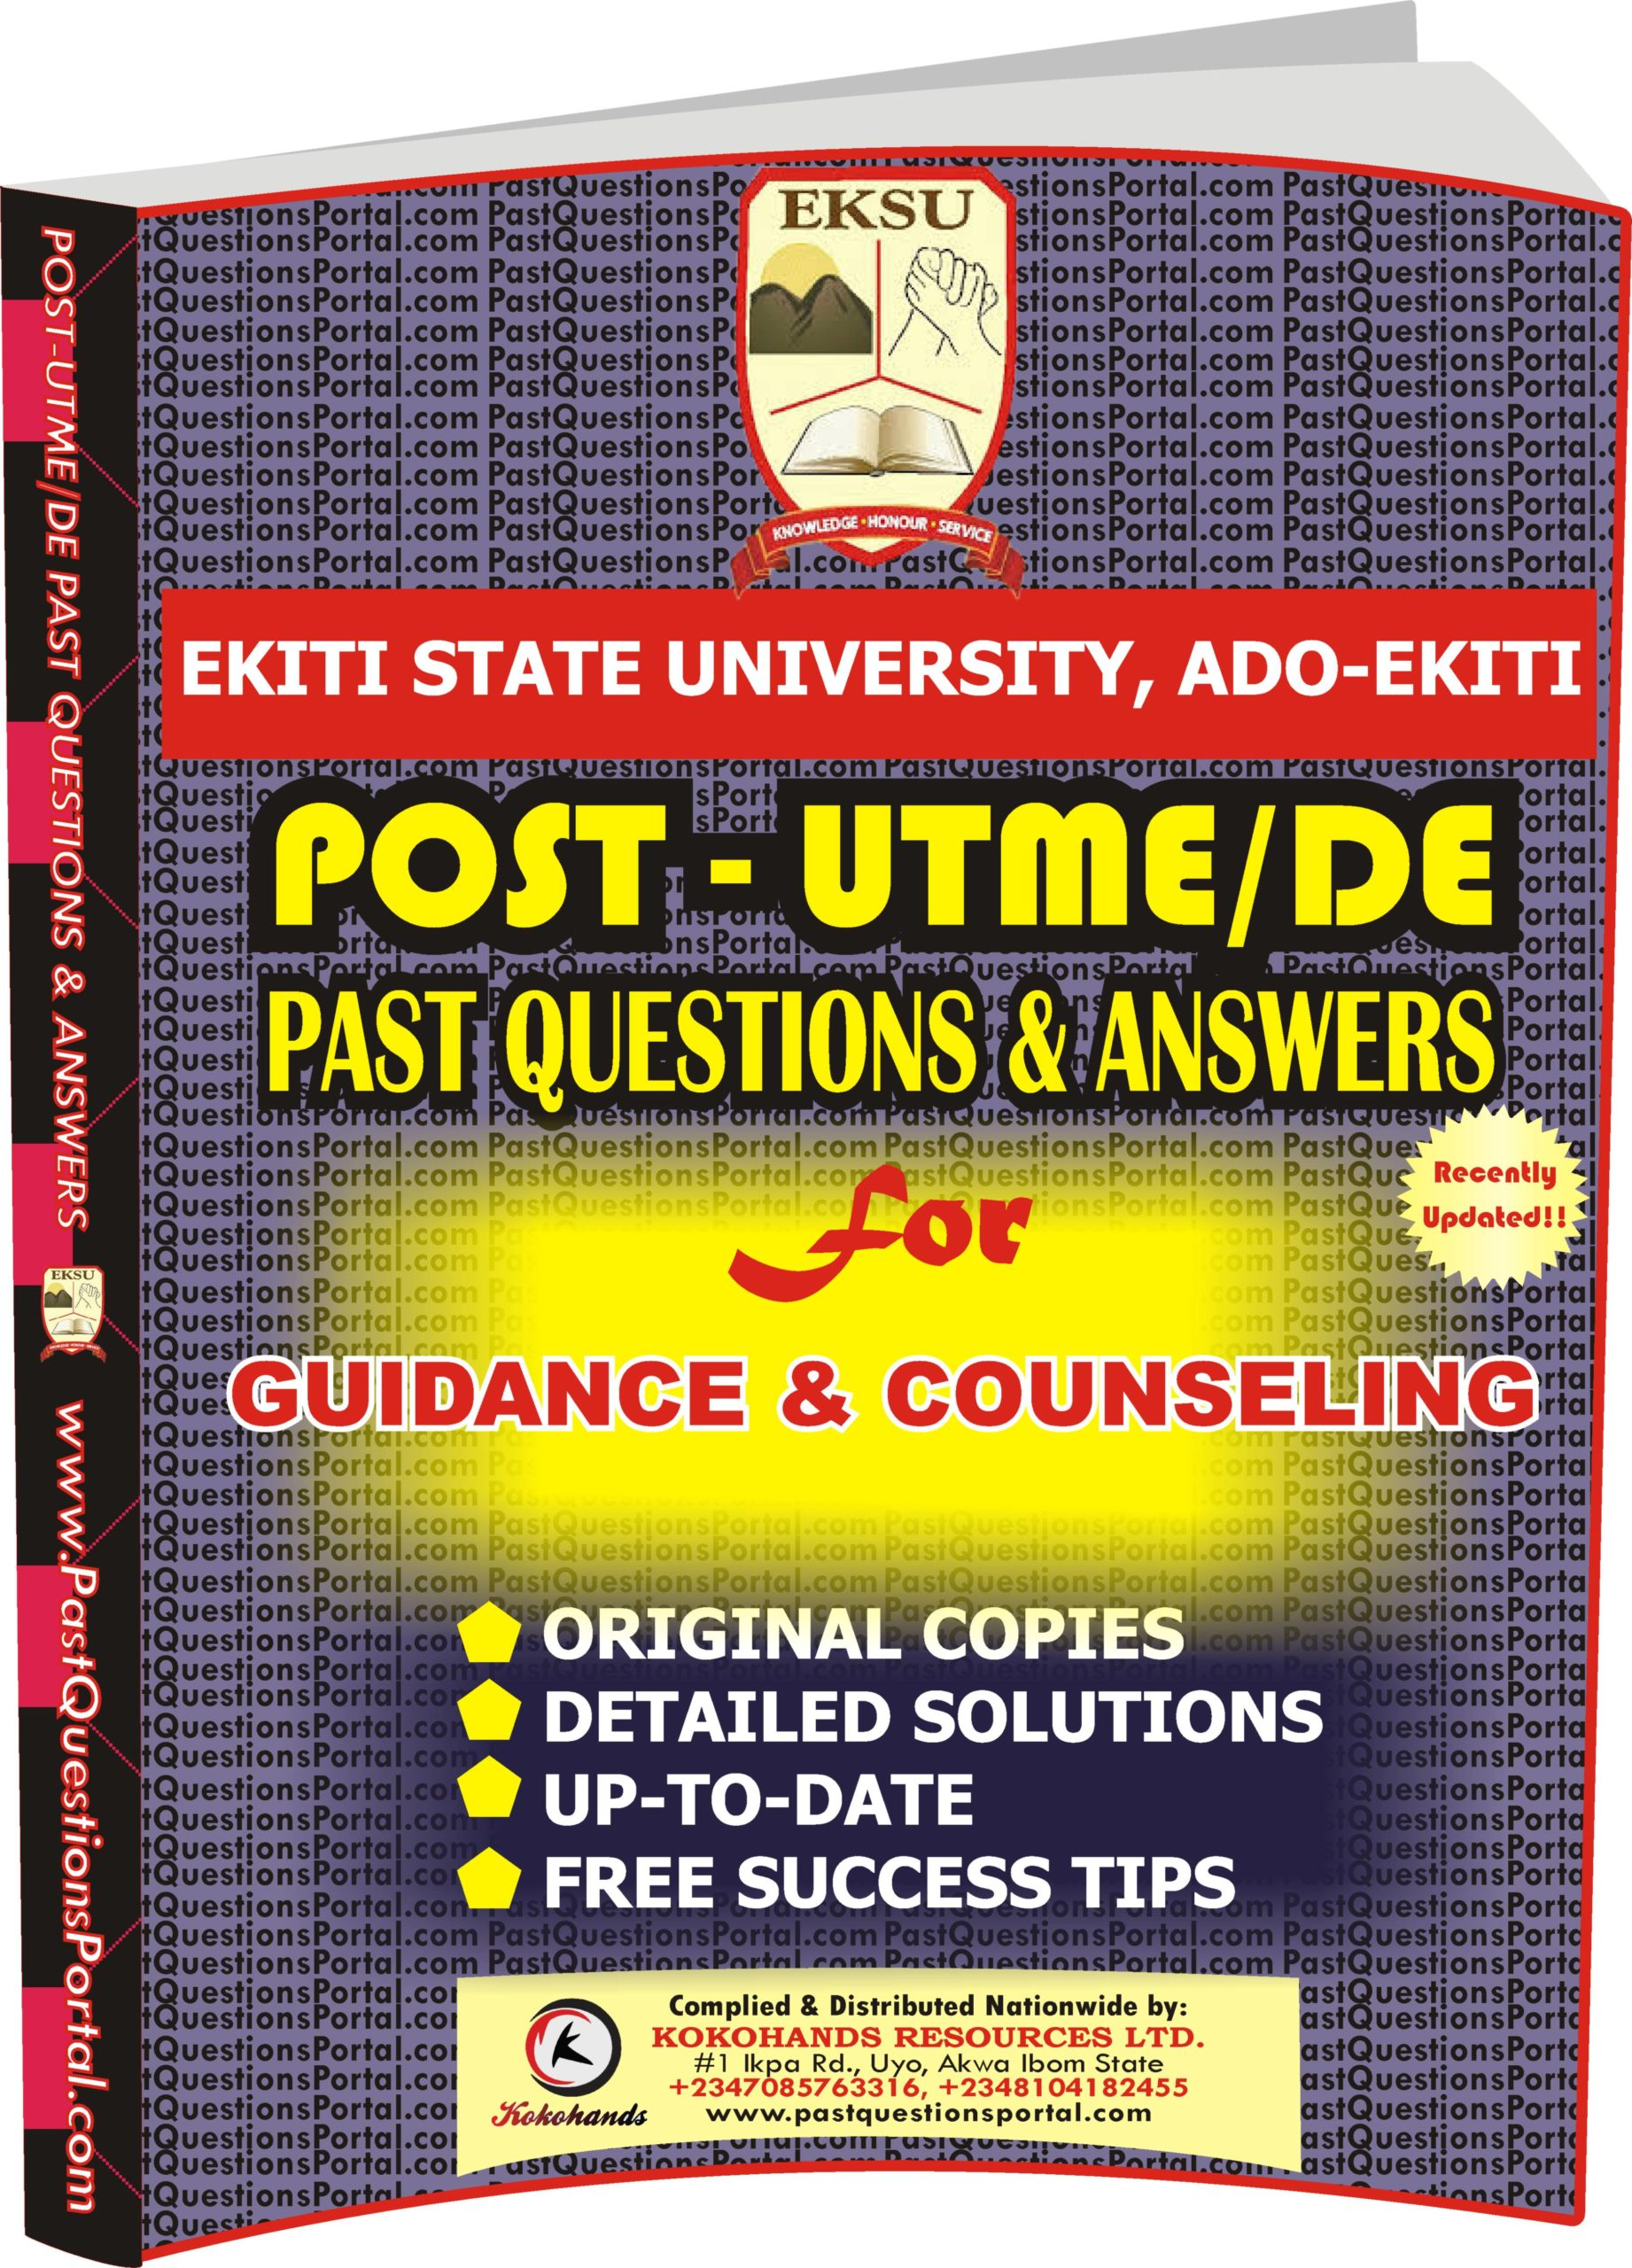 EKSU Post UTME Past Questions for GUIDANCE & COUNSELING